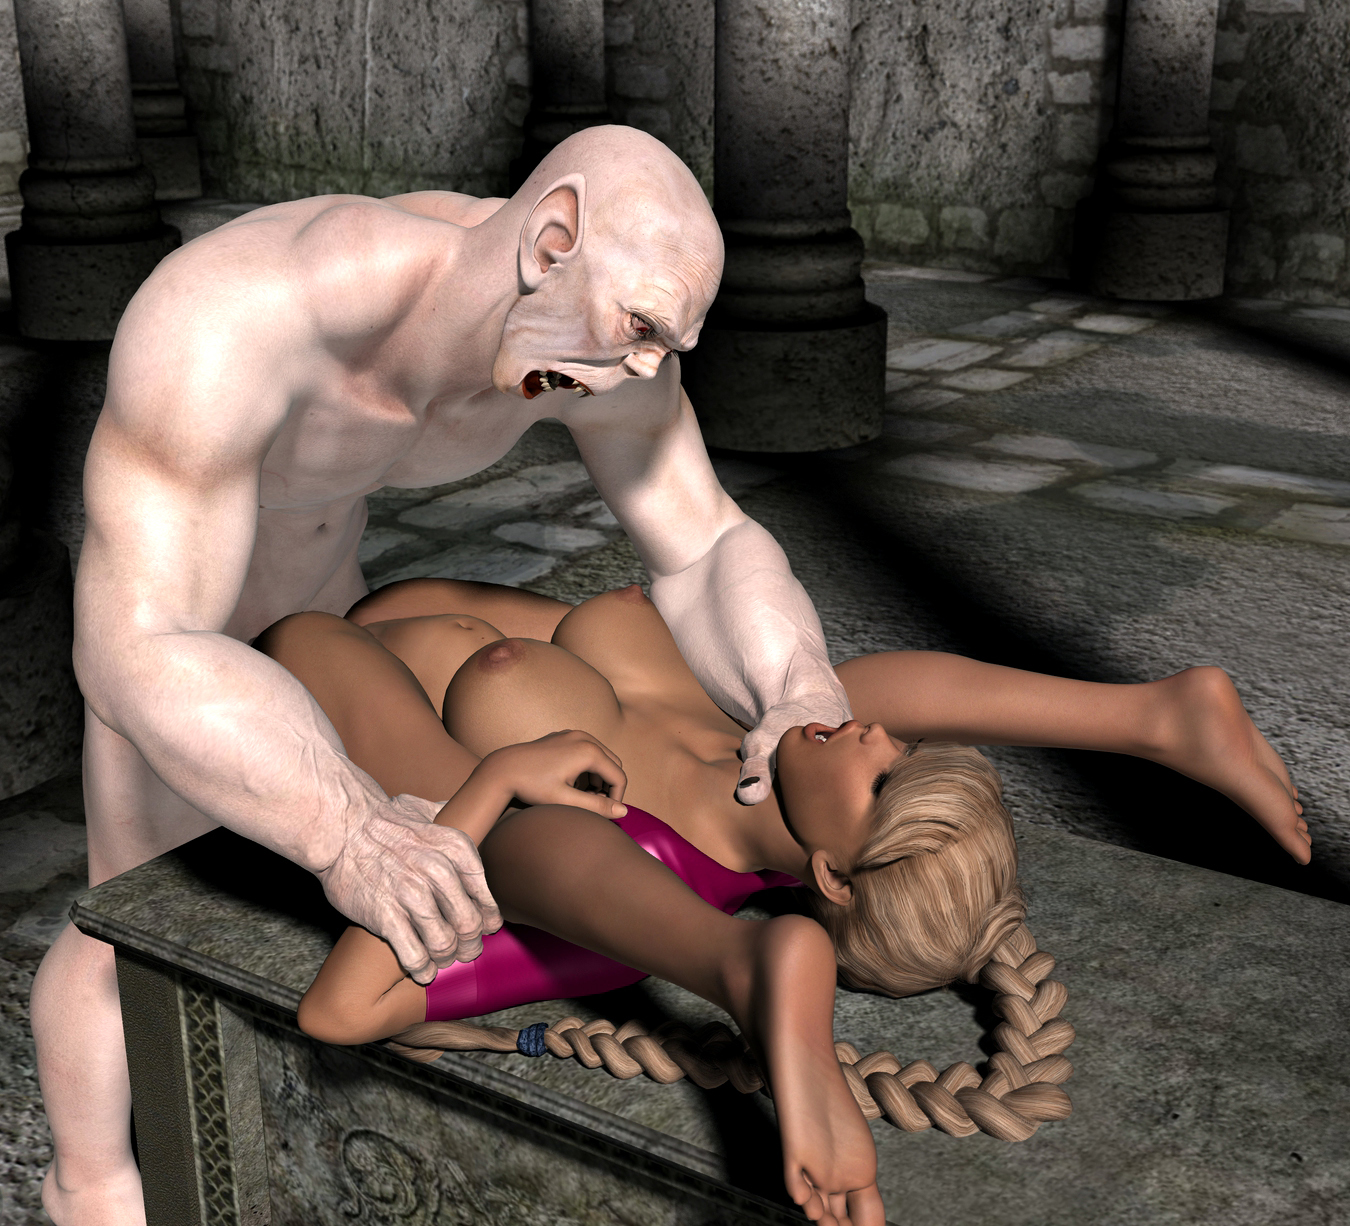 3d cartoon vampire sex games tube sex download